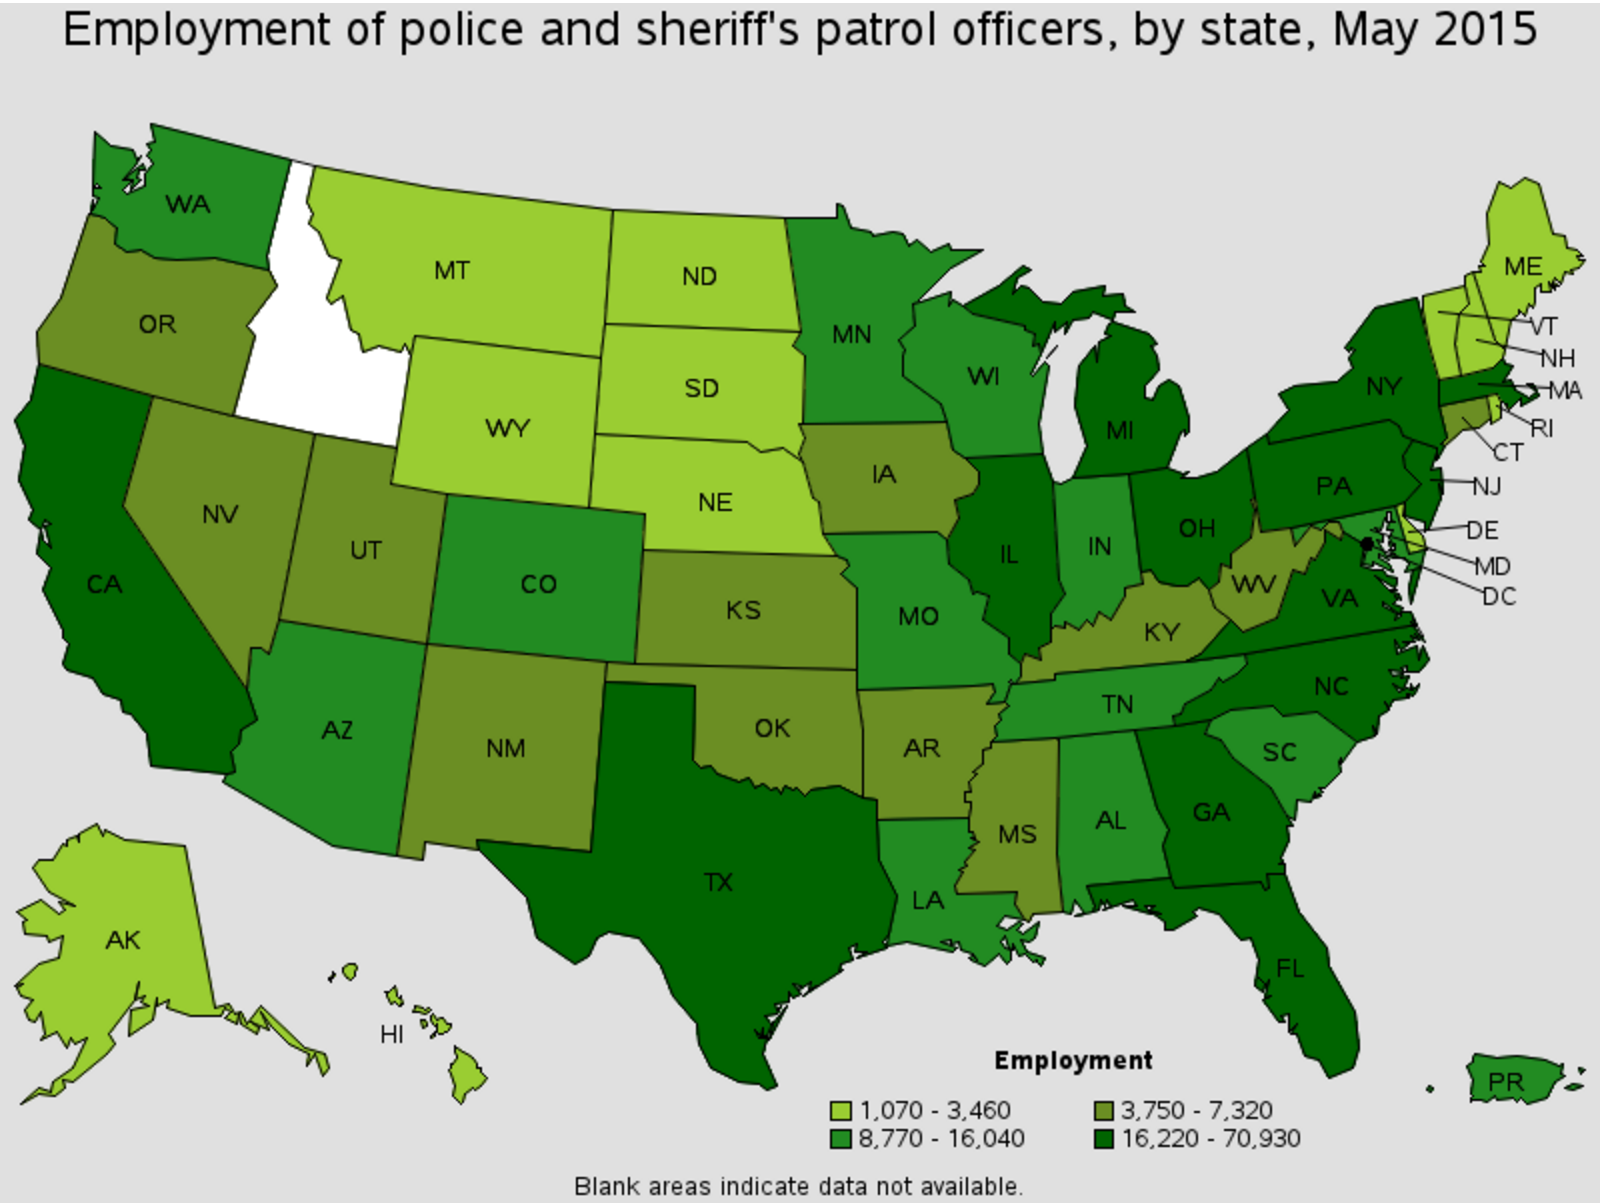 Lacon police officer career outlook by state